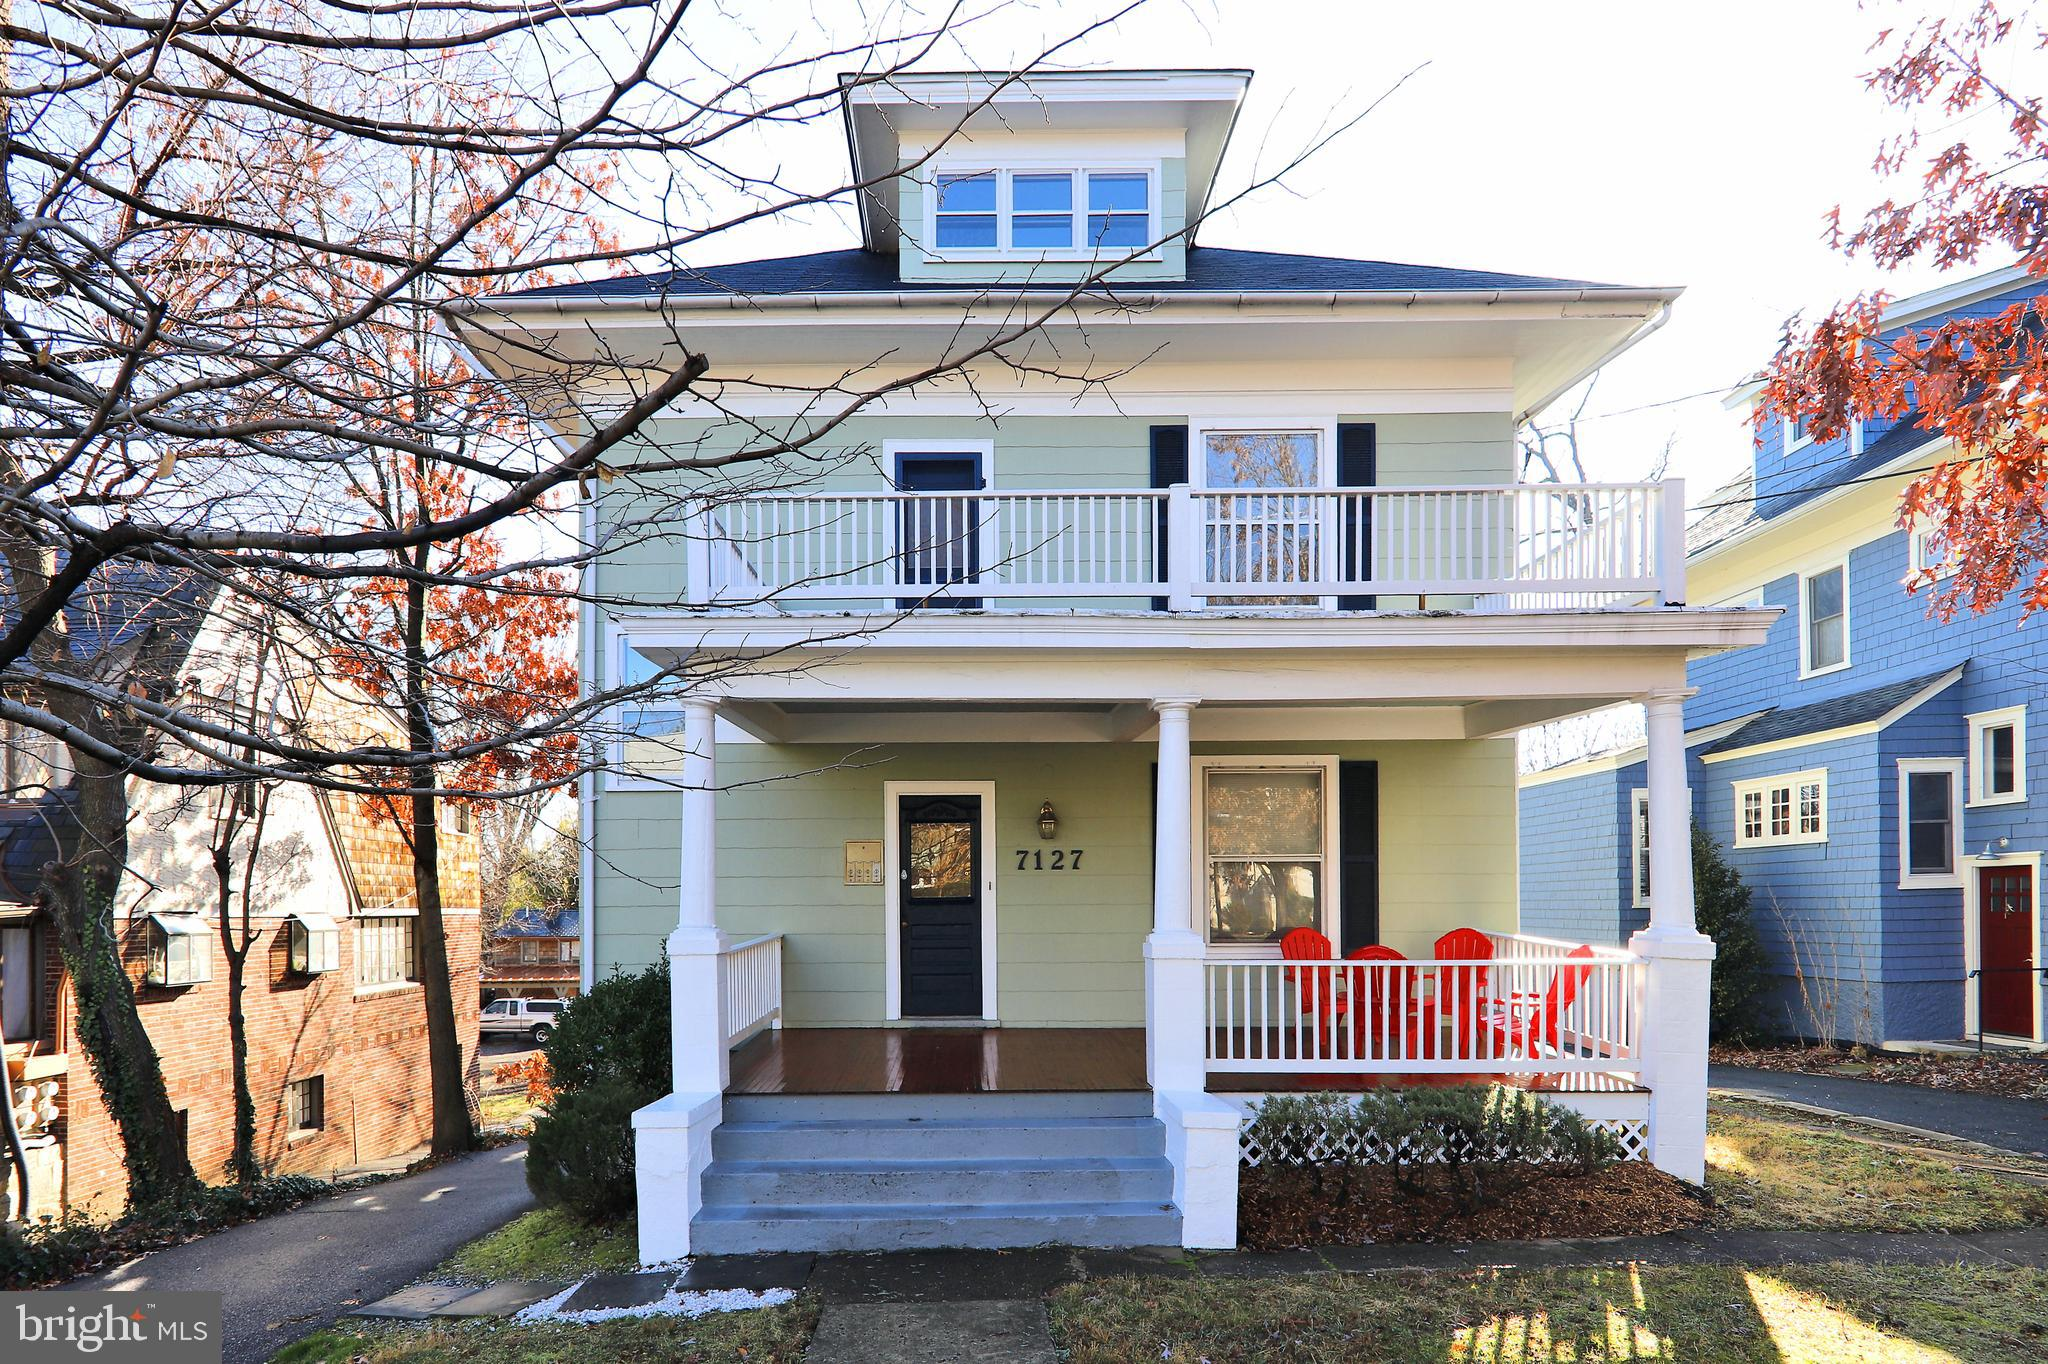 7127 CARROLL AVENUE, TAKOMA PARK, MD 20912